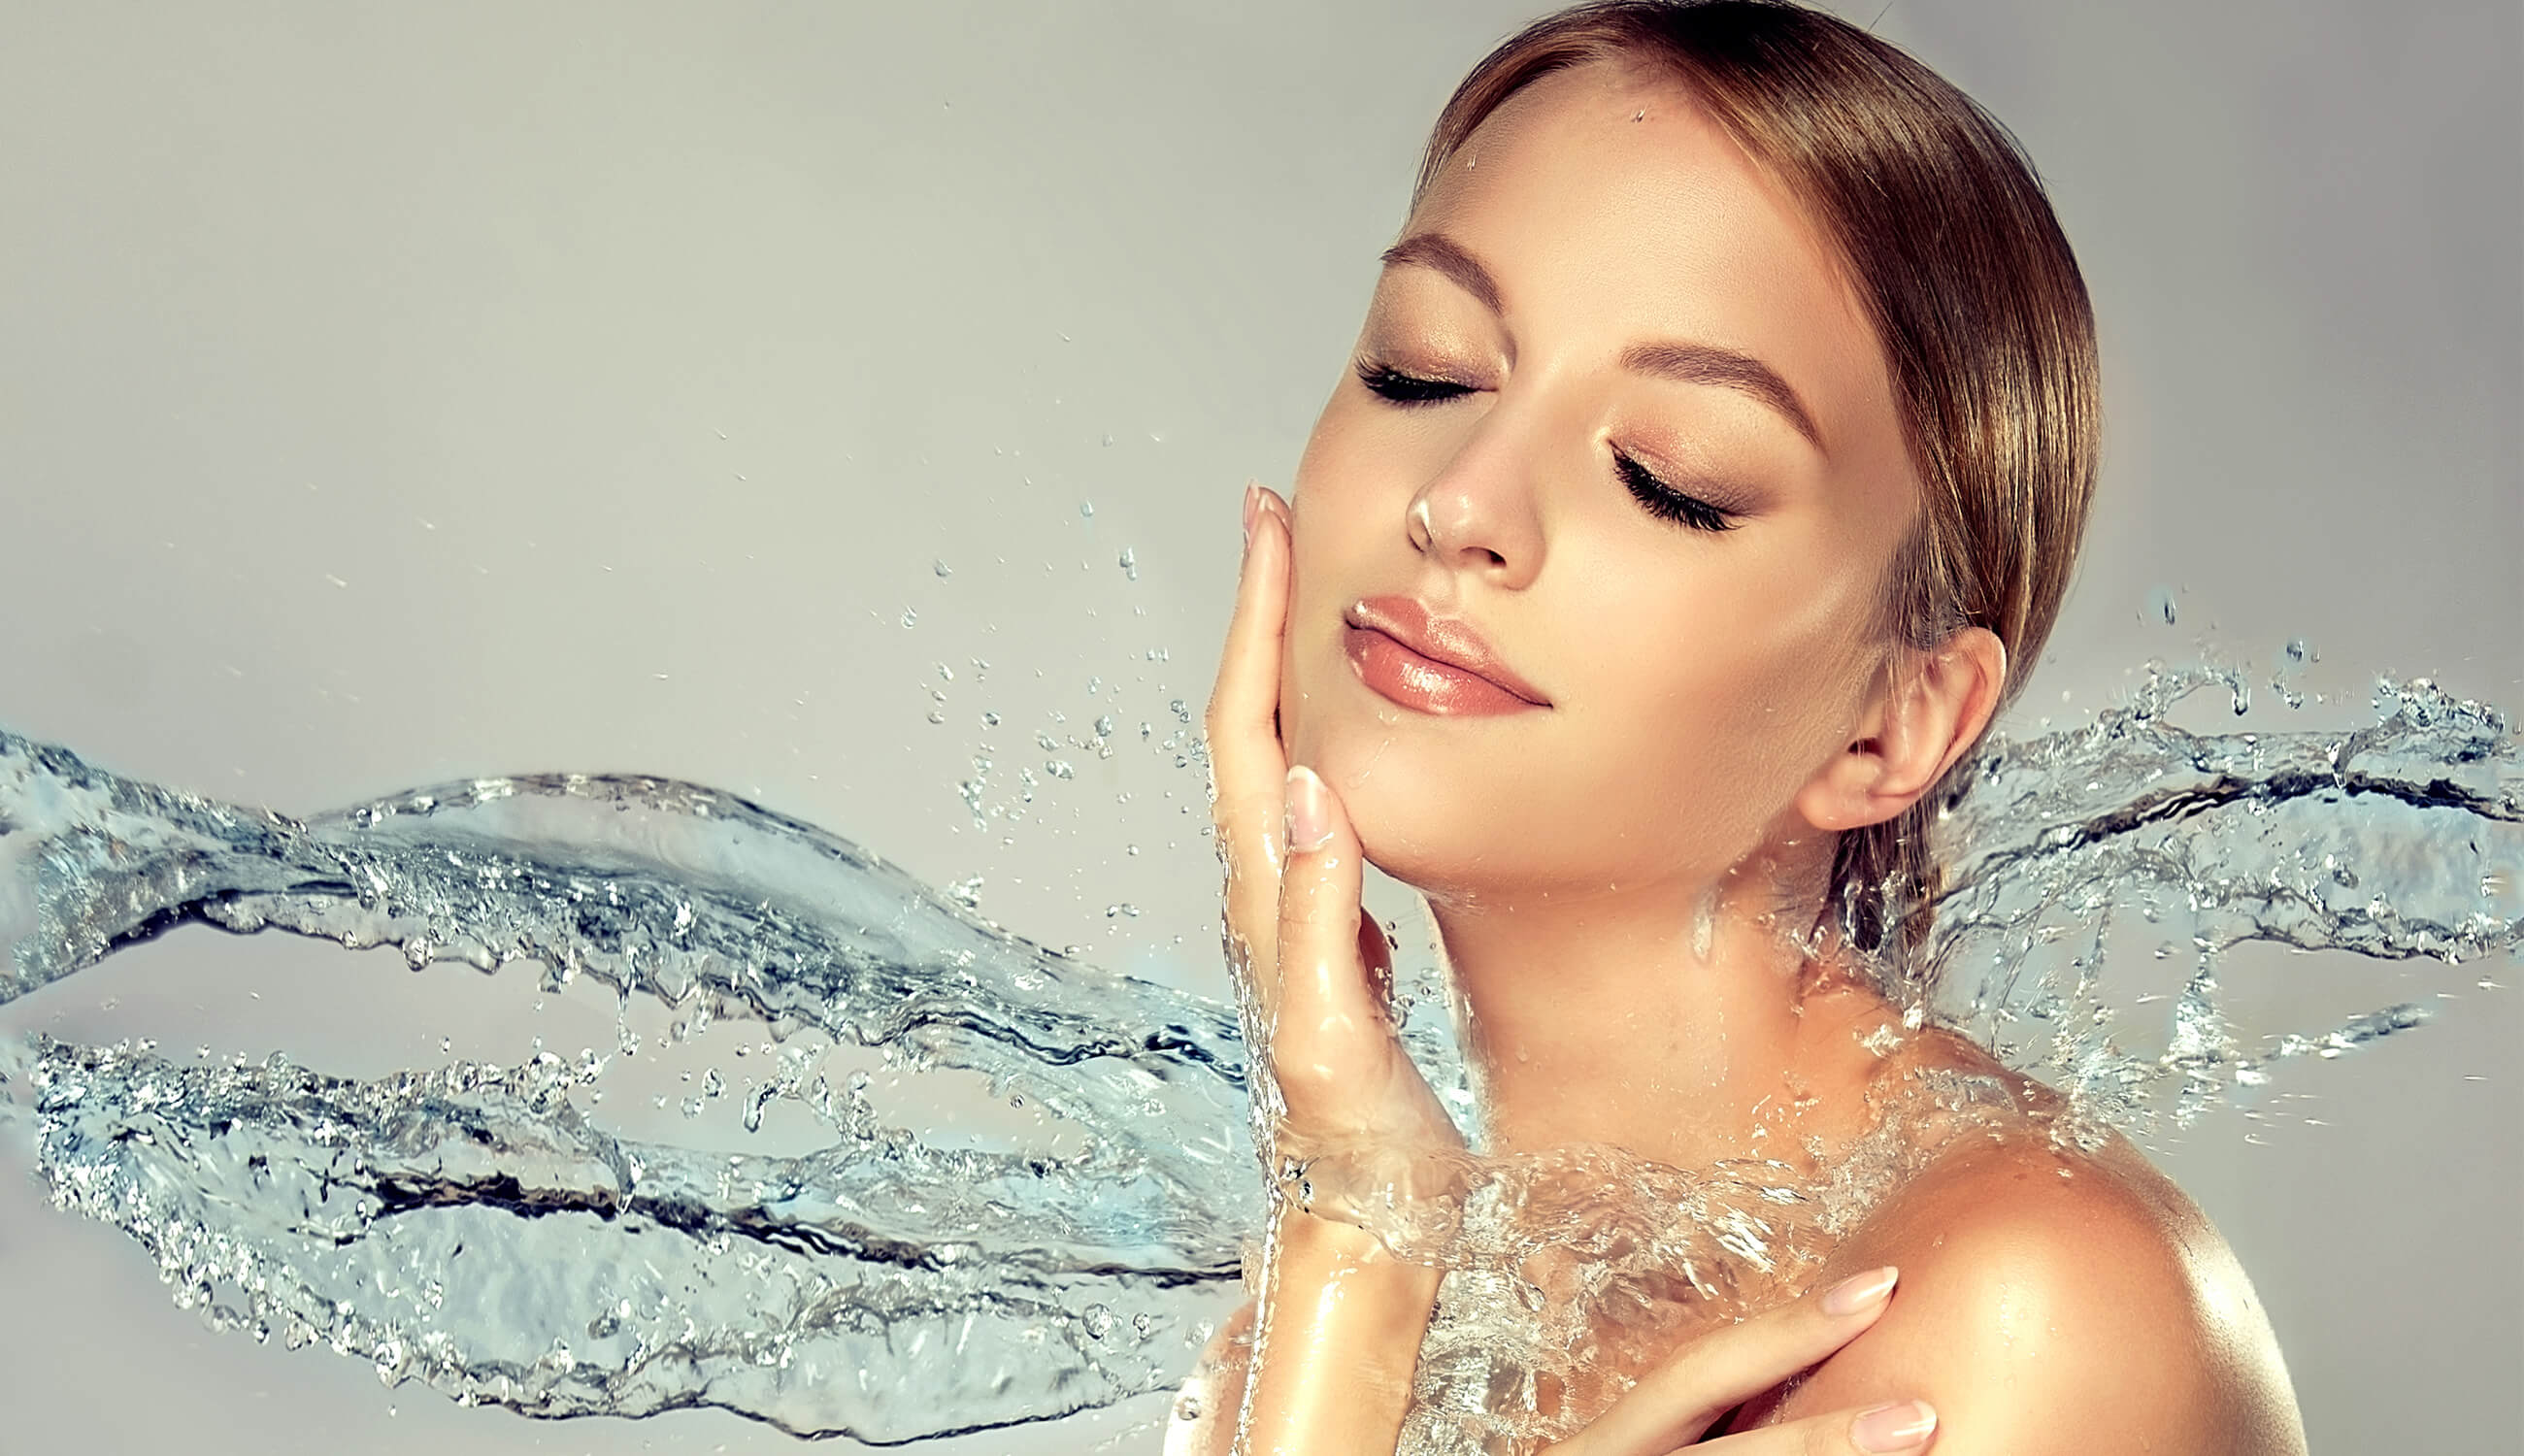 woman with water around face.jpg